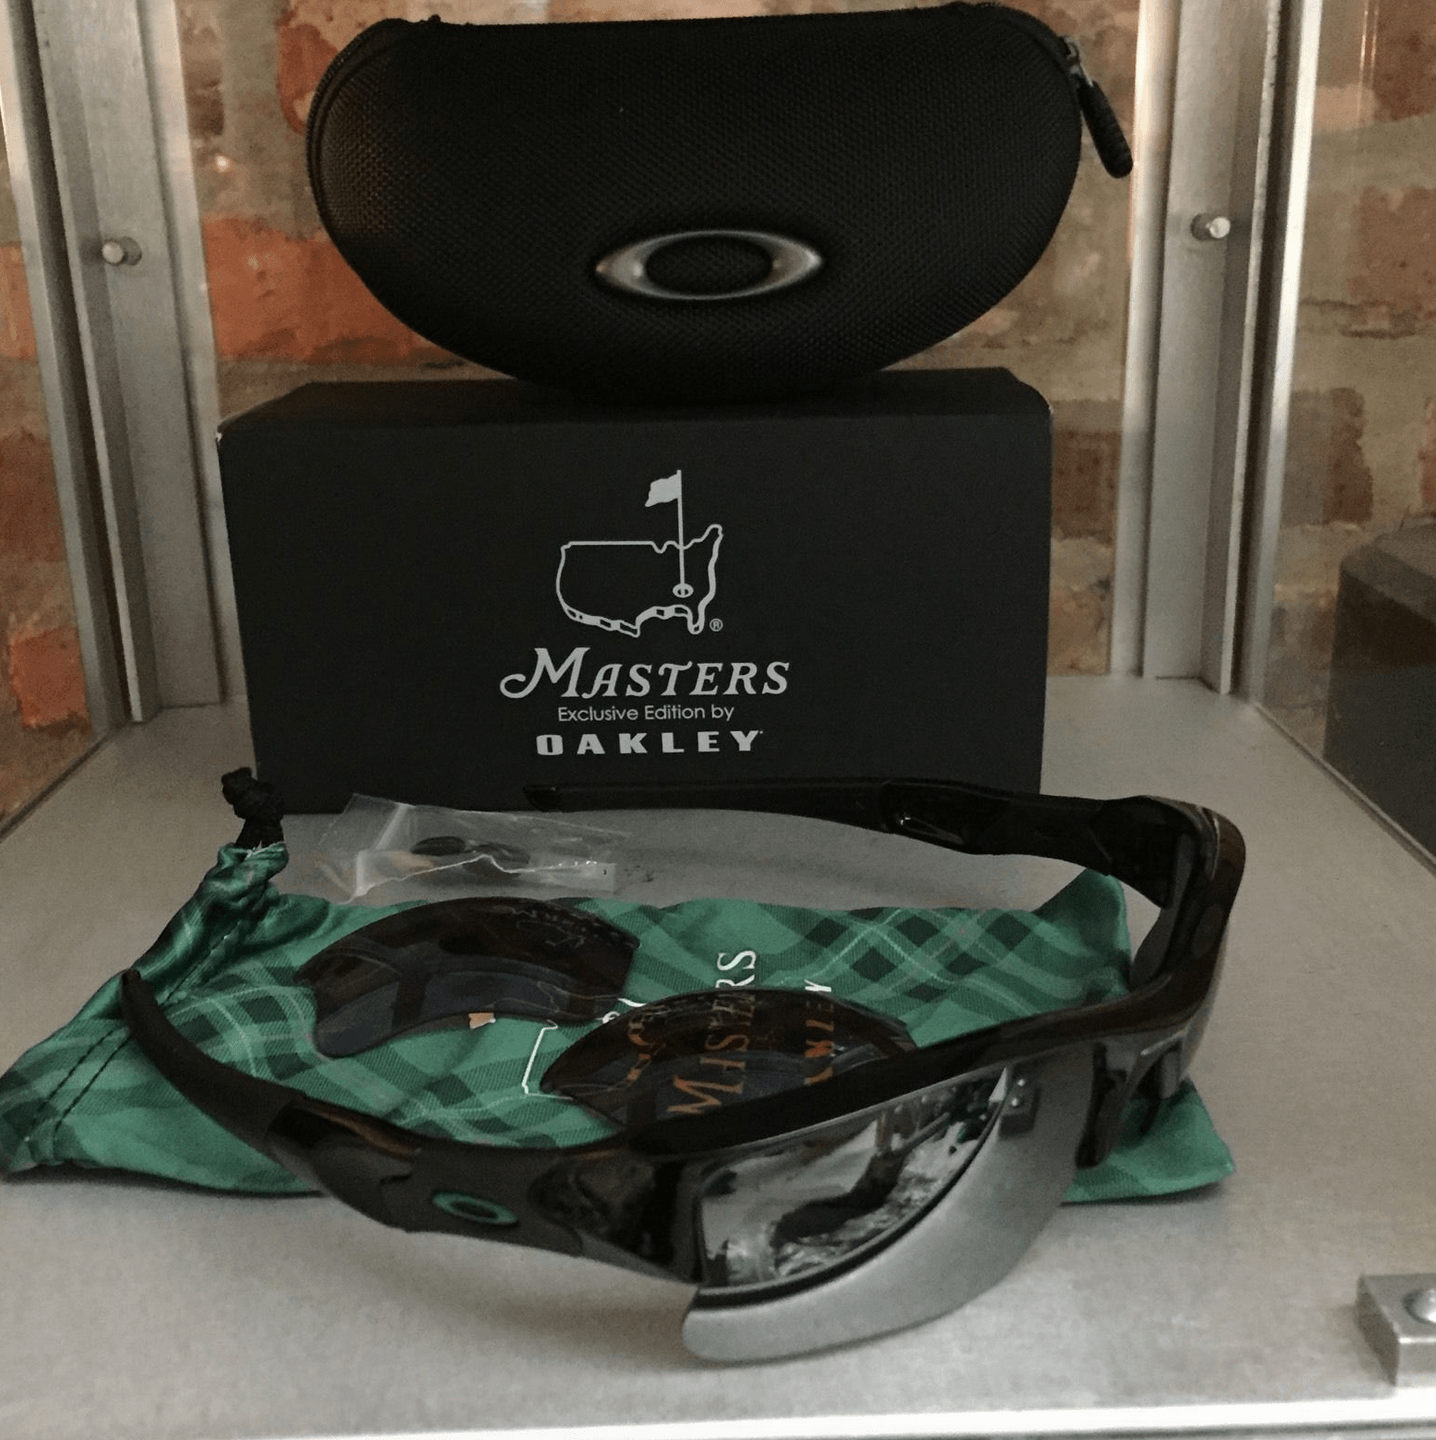 Masters Special Edition Oakleys? - Screen Shot 2015-04-12 at 9.14.52 AM.png